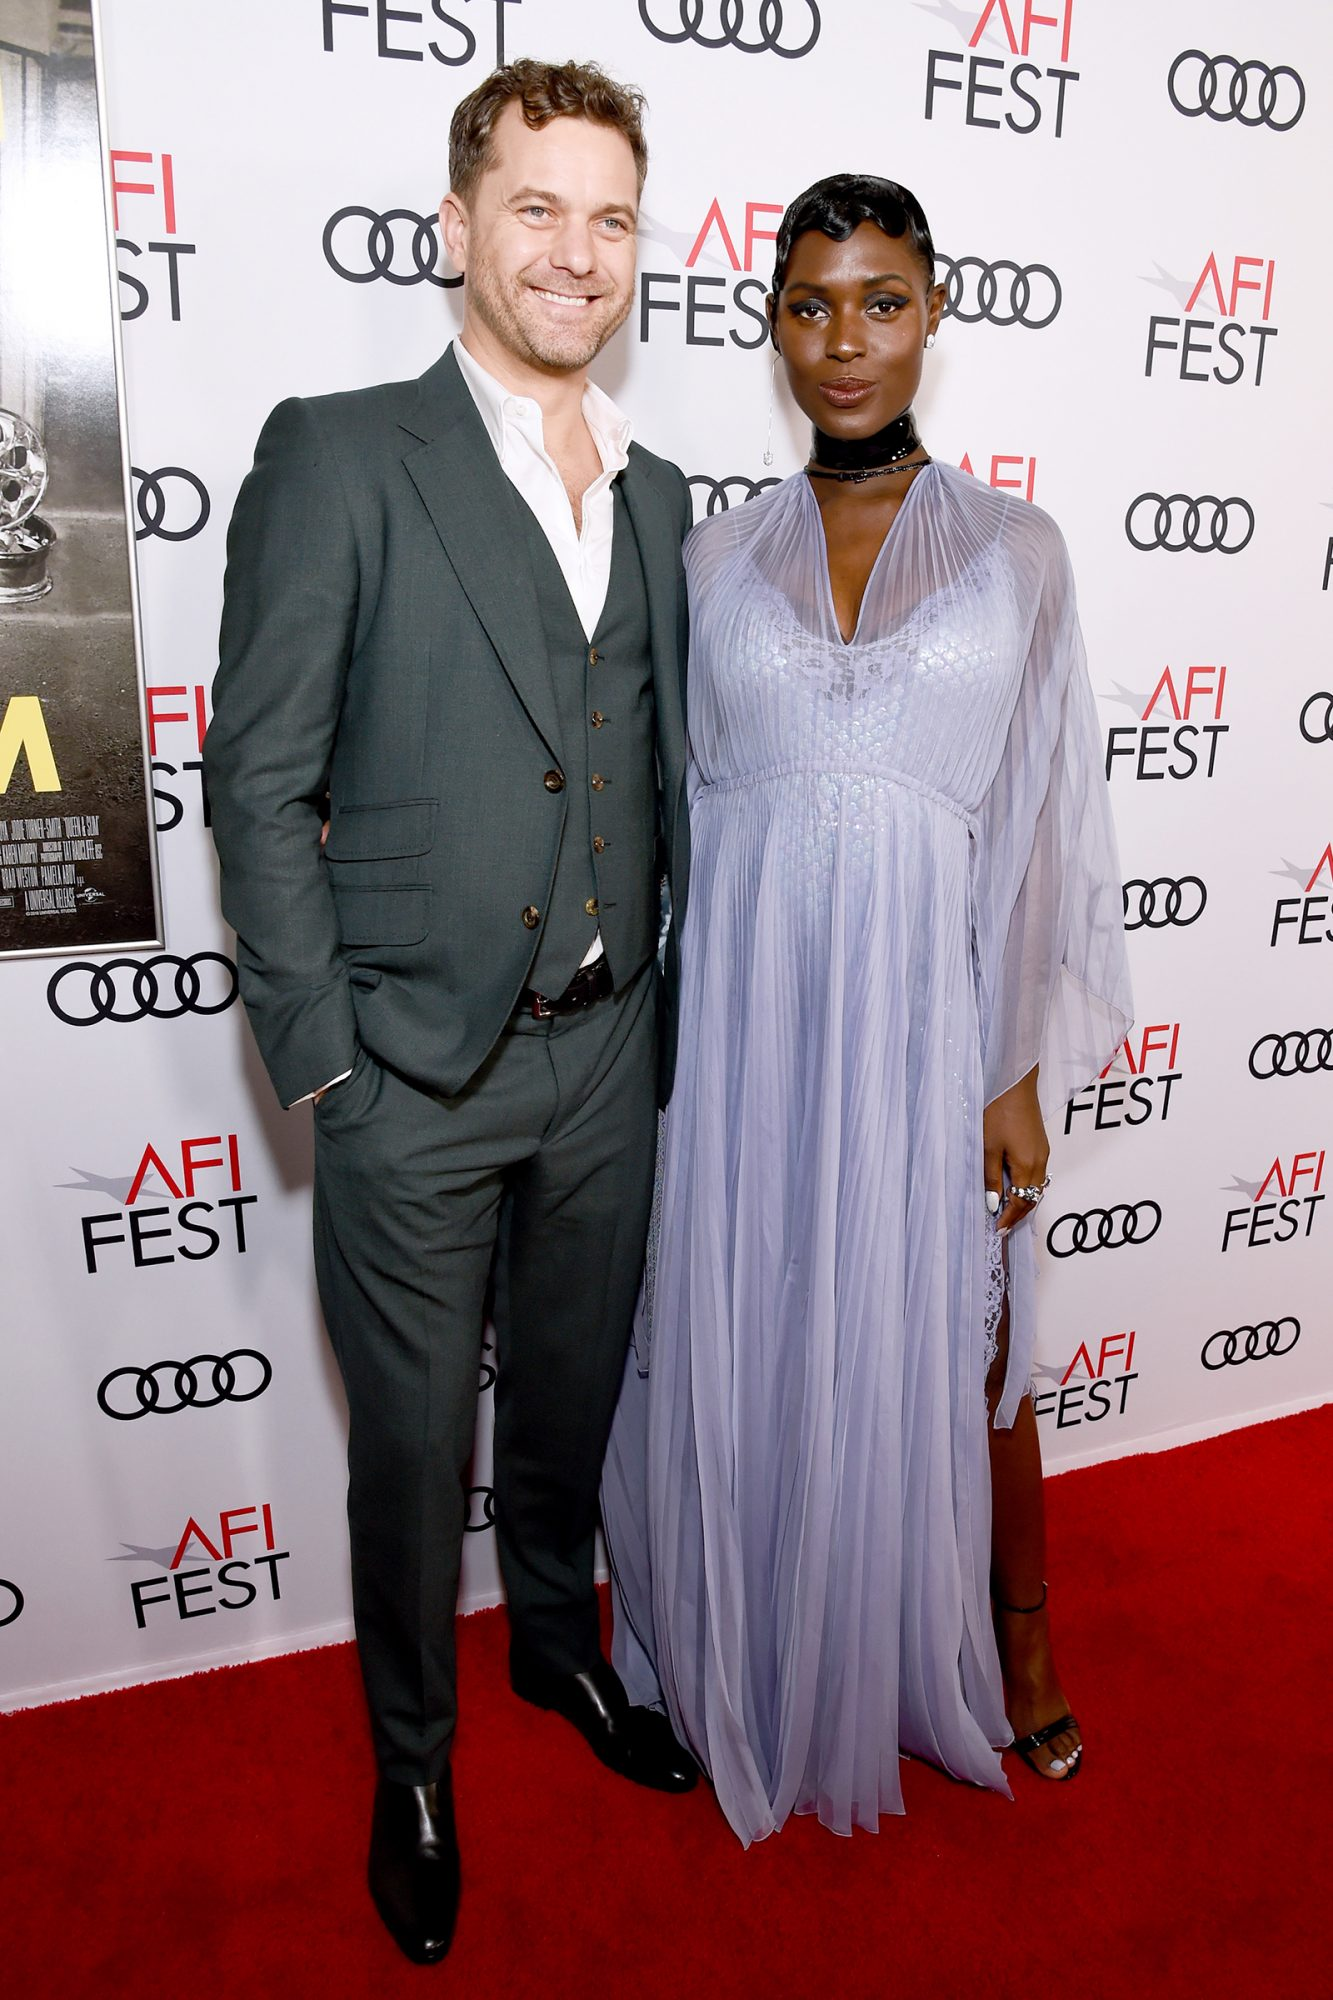 """Joshua Jackson and Jodie Turner-Smith attend the """"Queen & Slim"""" Premiere at AFI FEST 2019 presented by Audi at the TCL Chinese Theatre on November 14, 2019 in Hollywood, California"""